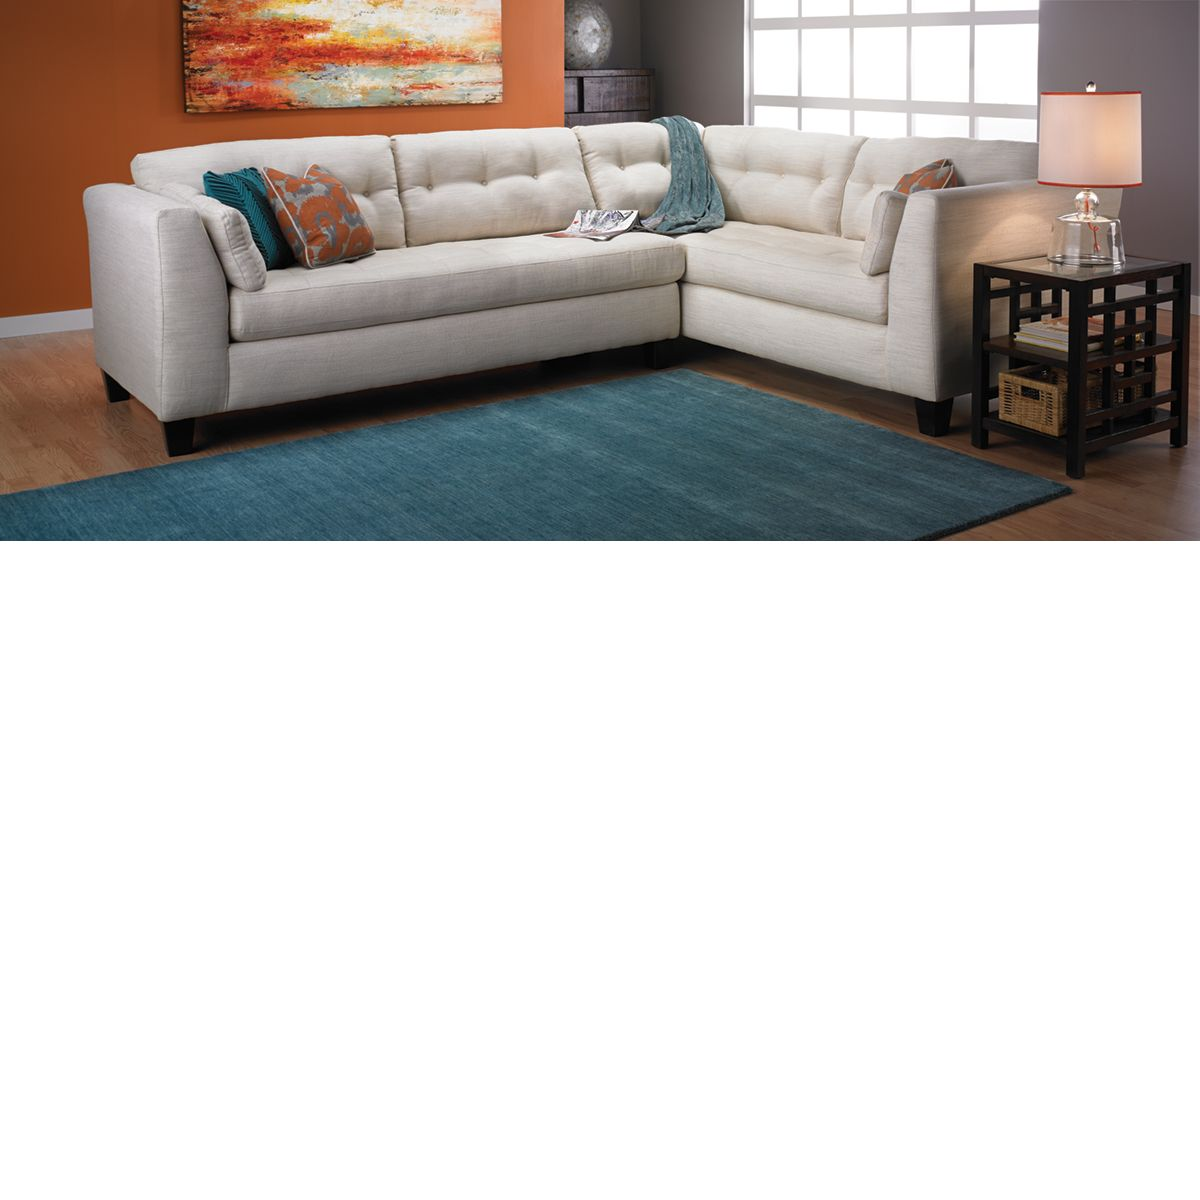 Sectional Sofas The Dump: The Dump Furniture - MARLOW SECTIONAL SOFA